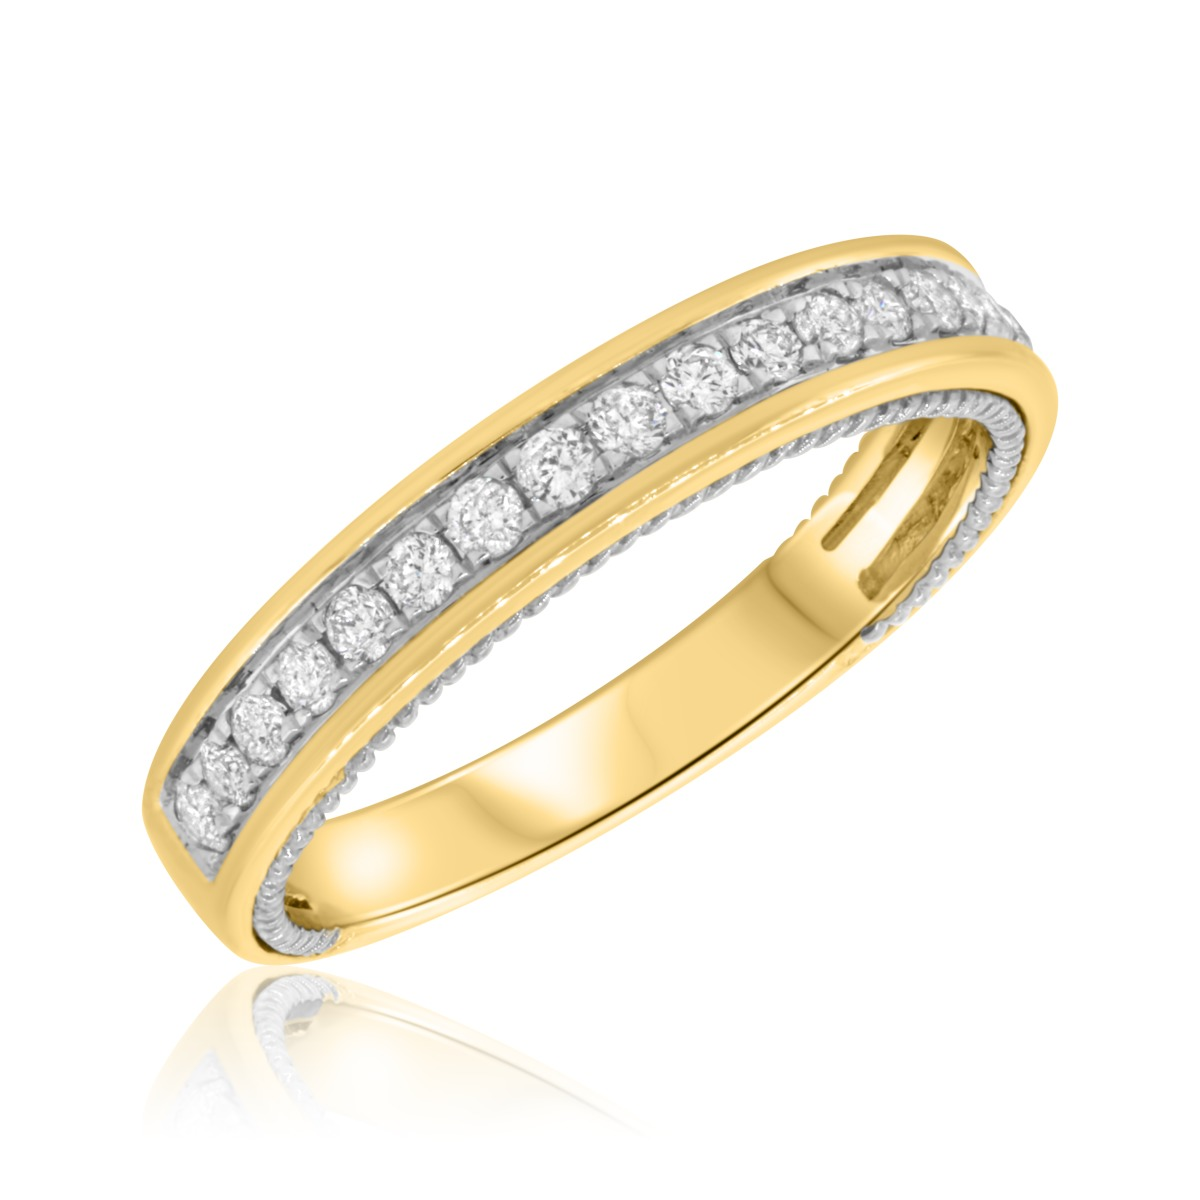 1/5 CT. T.W. Diamond Ladies Wedding Band  10K Yellow Gold